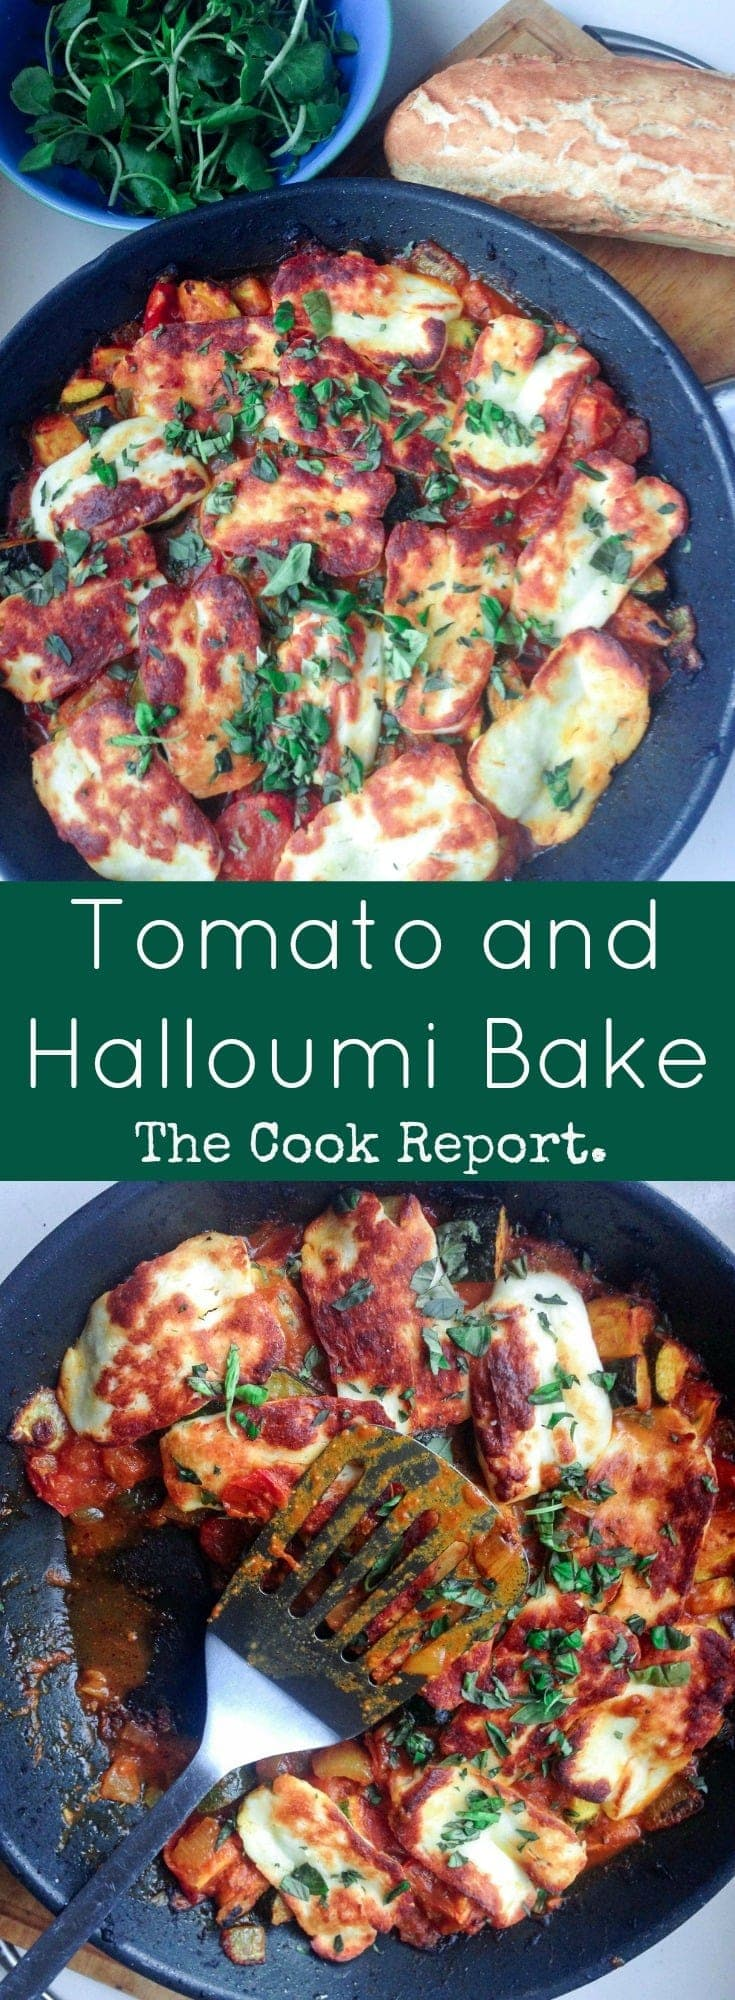 This halloumi bake perfectly combines the healthy freshness of vegetables with the chewy, salty halloumi for a delicious vegetarian dinner. #vegetarianrecipe #halloumirecipe #halloumi #recipe #thecookreport